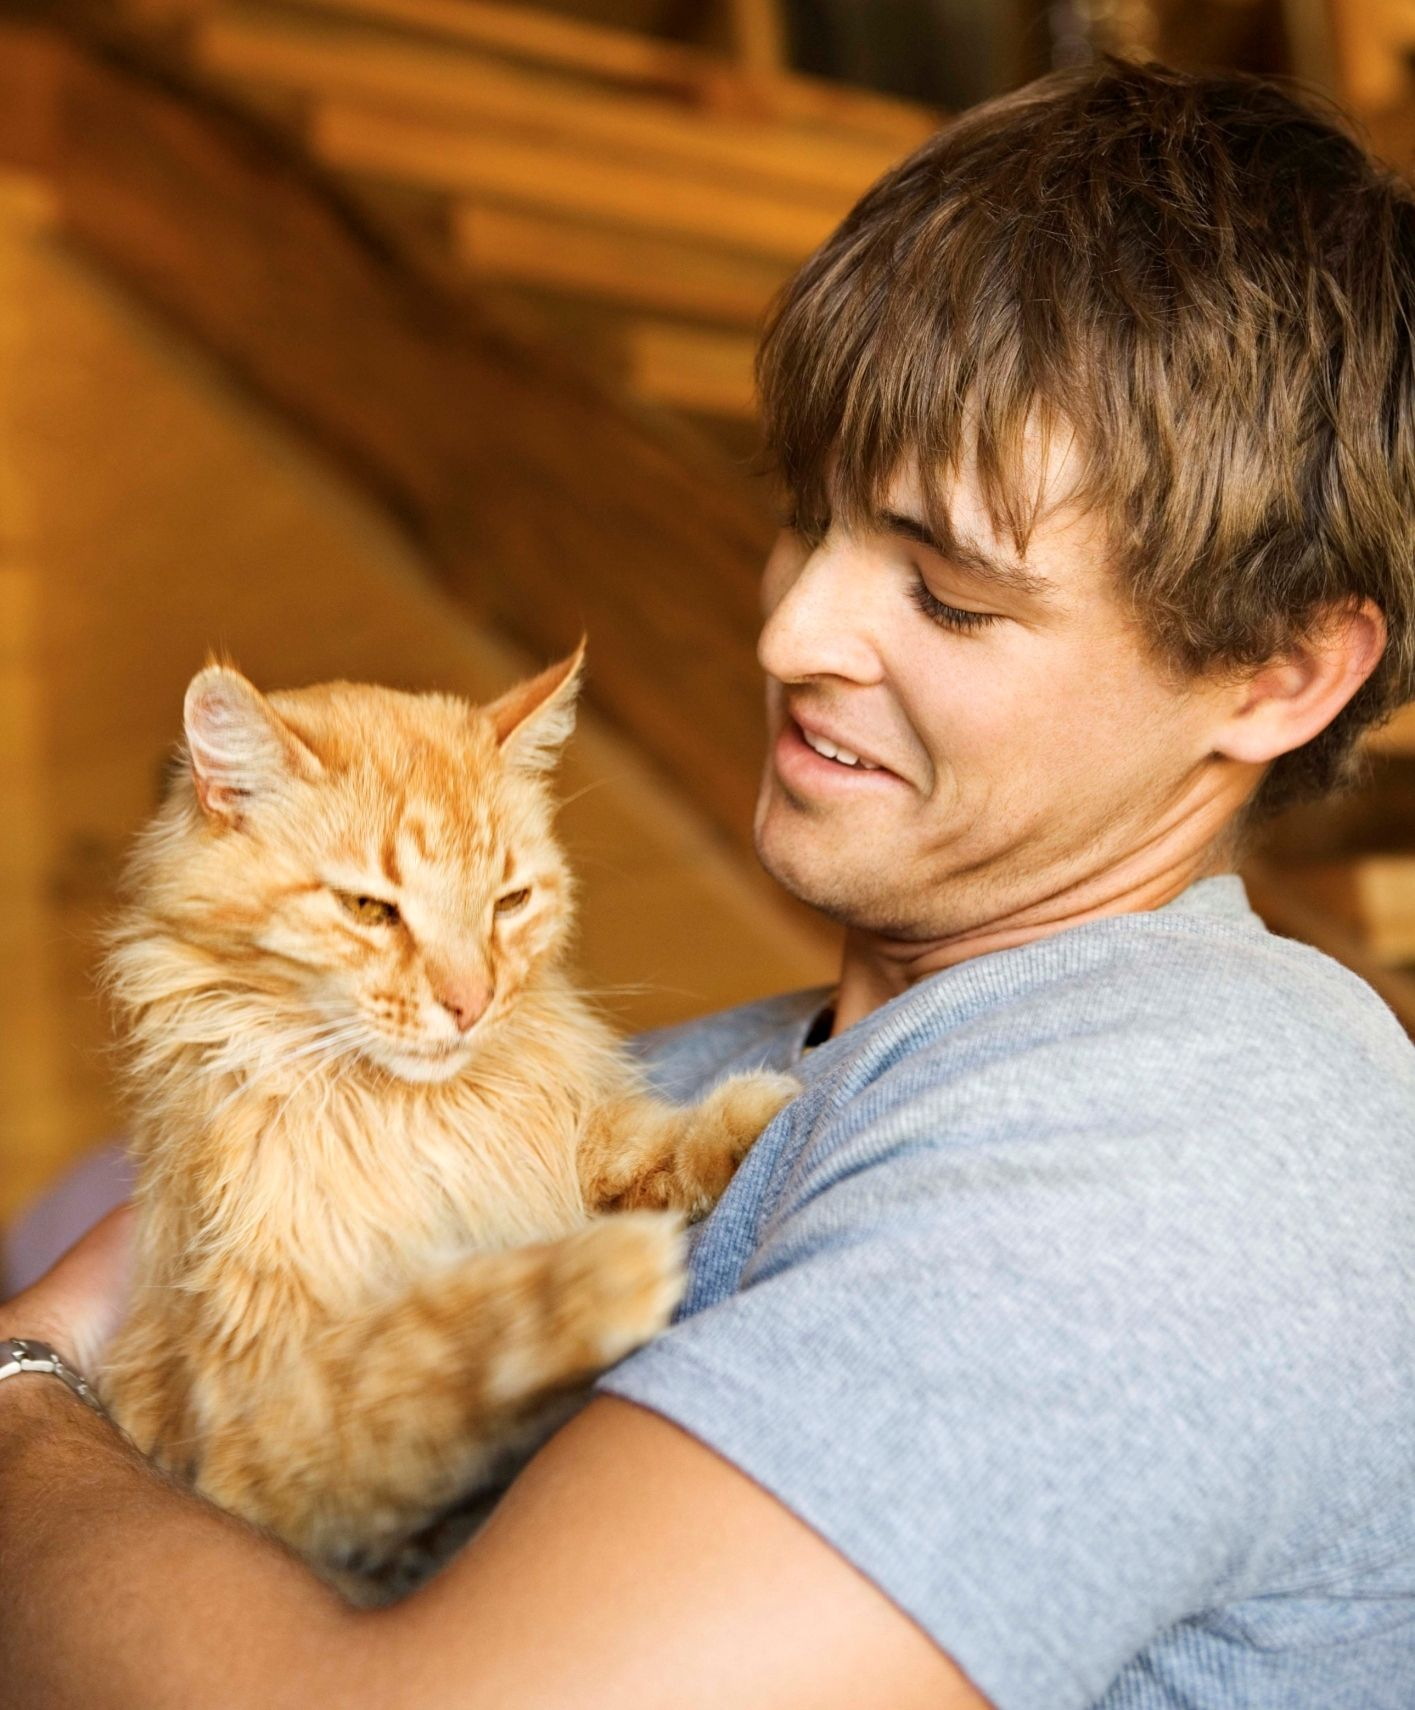 Man holding orange cat May is Pet Foster Care Awareness